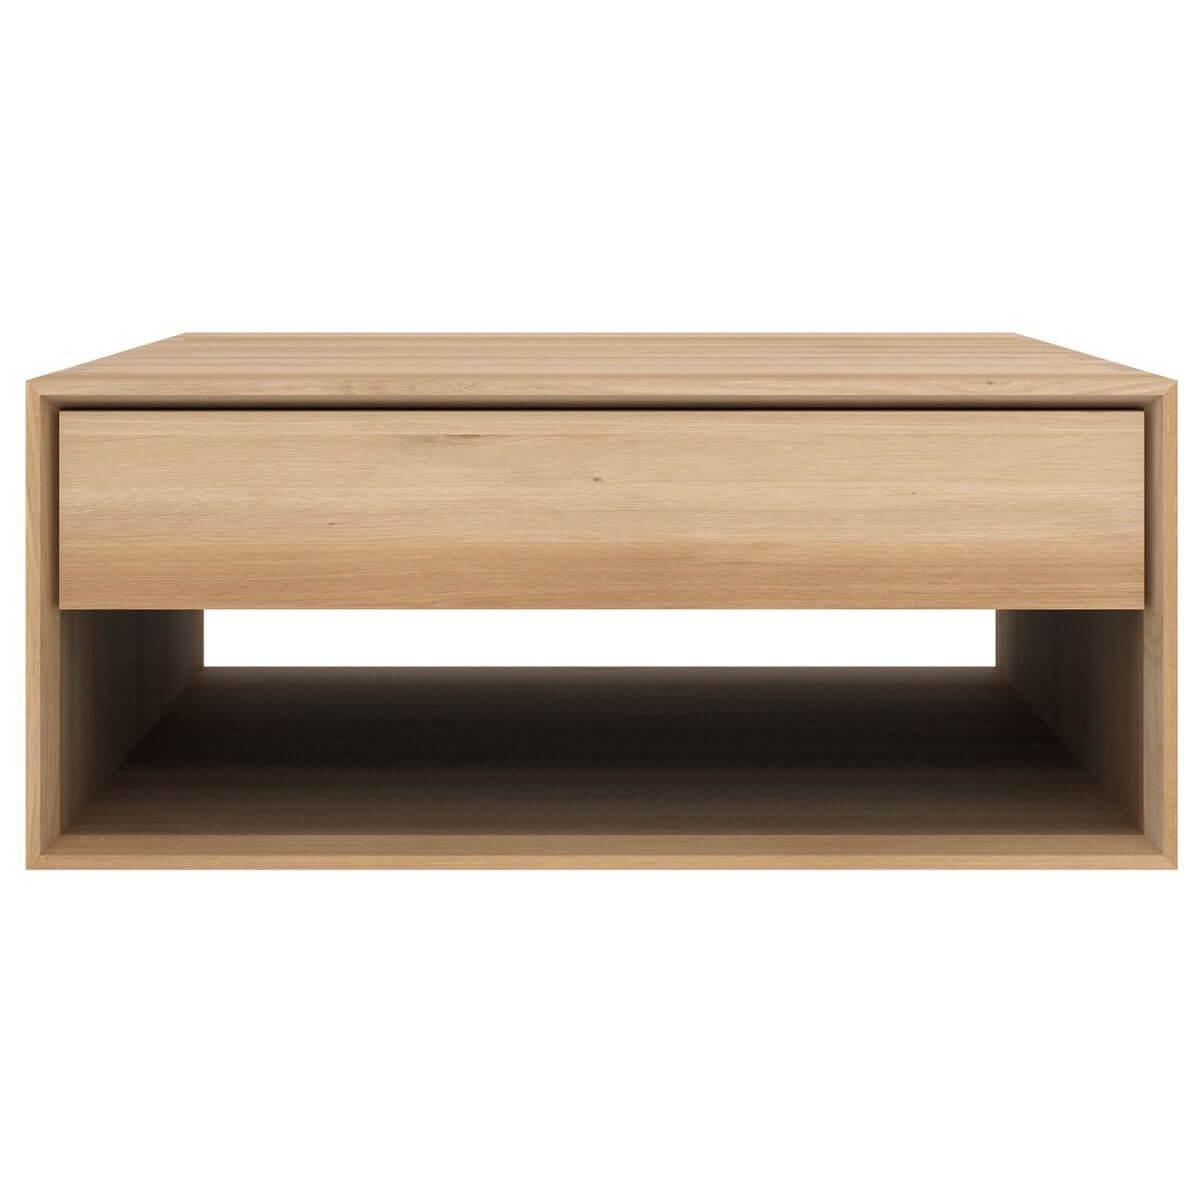 Table basse 80cm NORDIC Ethnicraft chêne